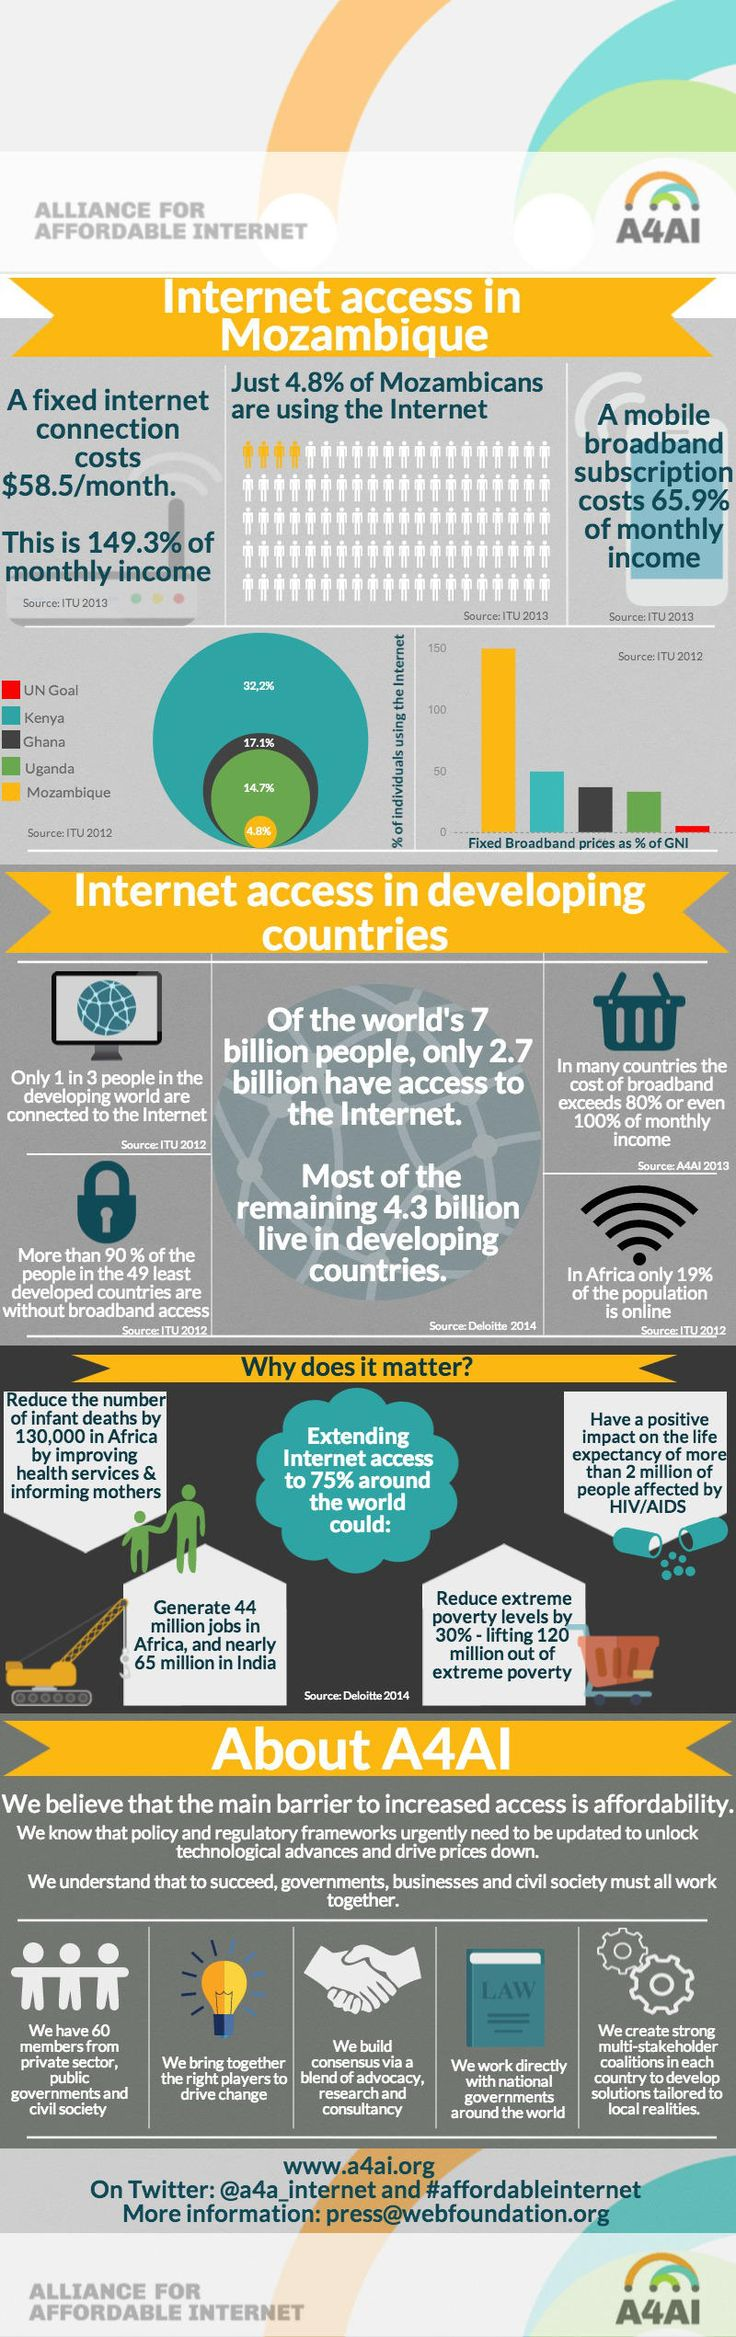 Internet access in Mozambique is still limited. The main barrier to increased access is affordability. {Alliance for Affordable Internet}